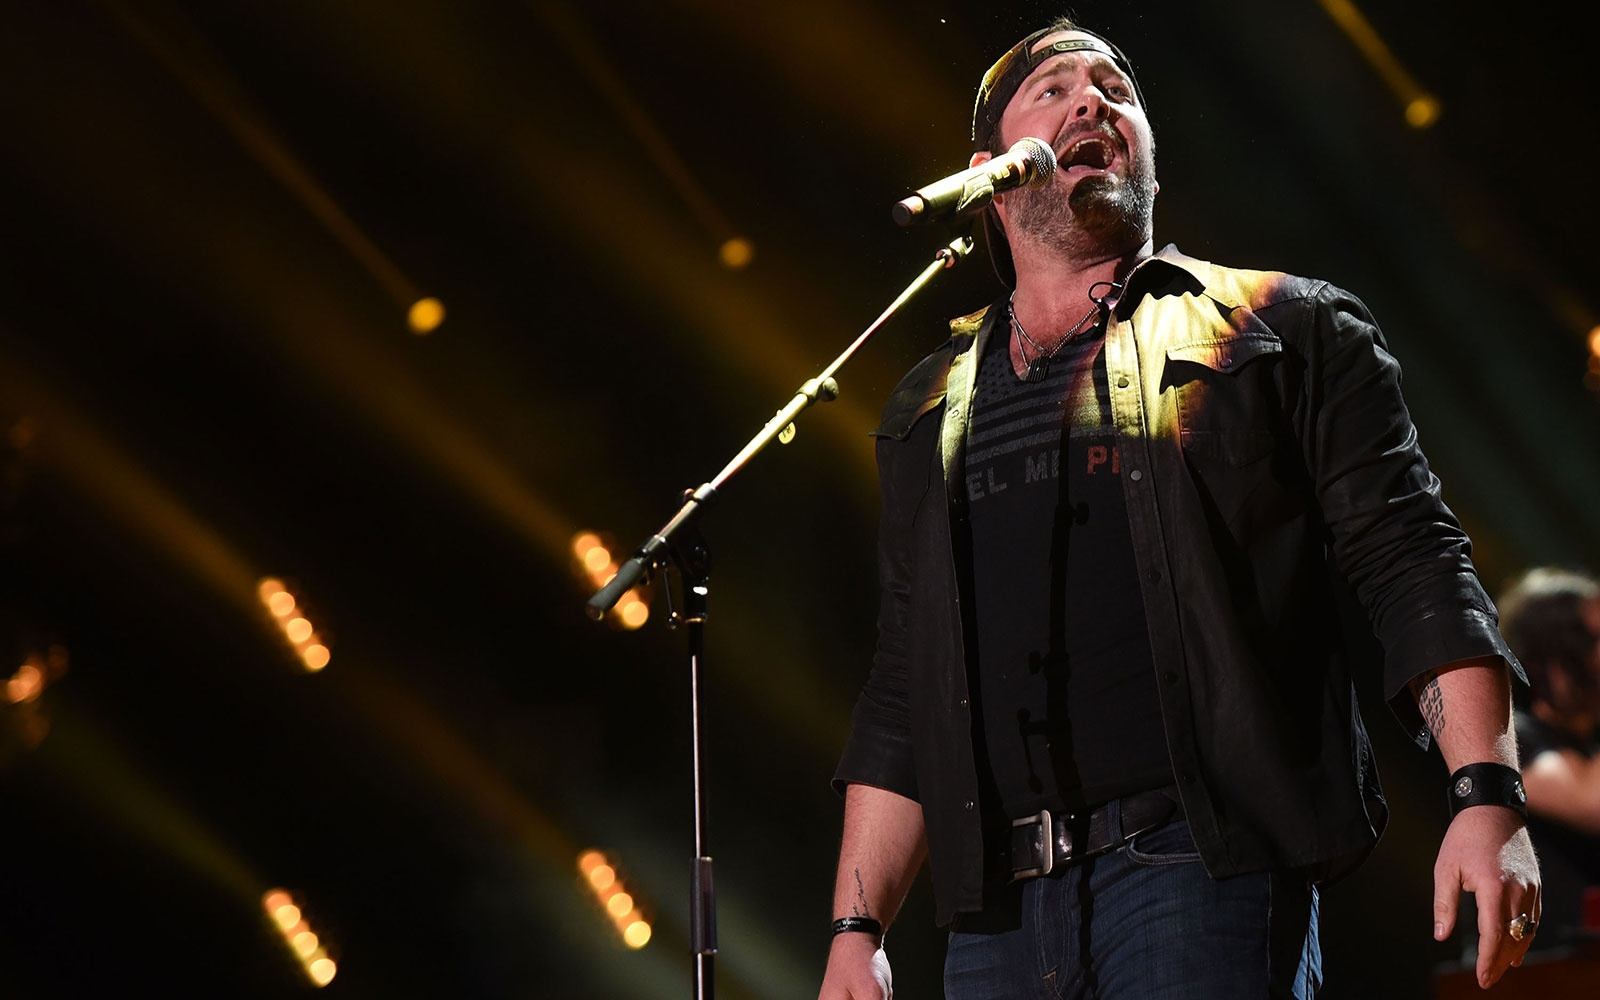 Talking Travel With Country Music Singer-Songwriter Lee Brice